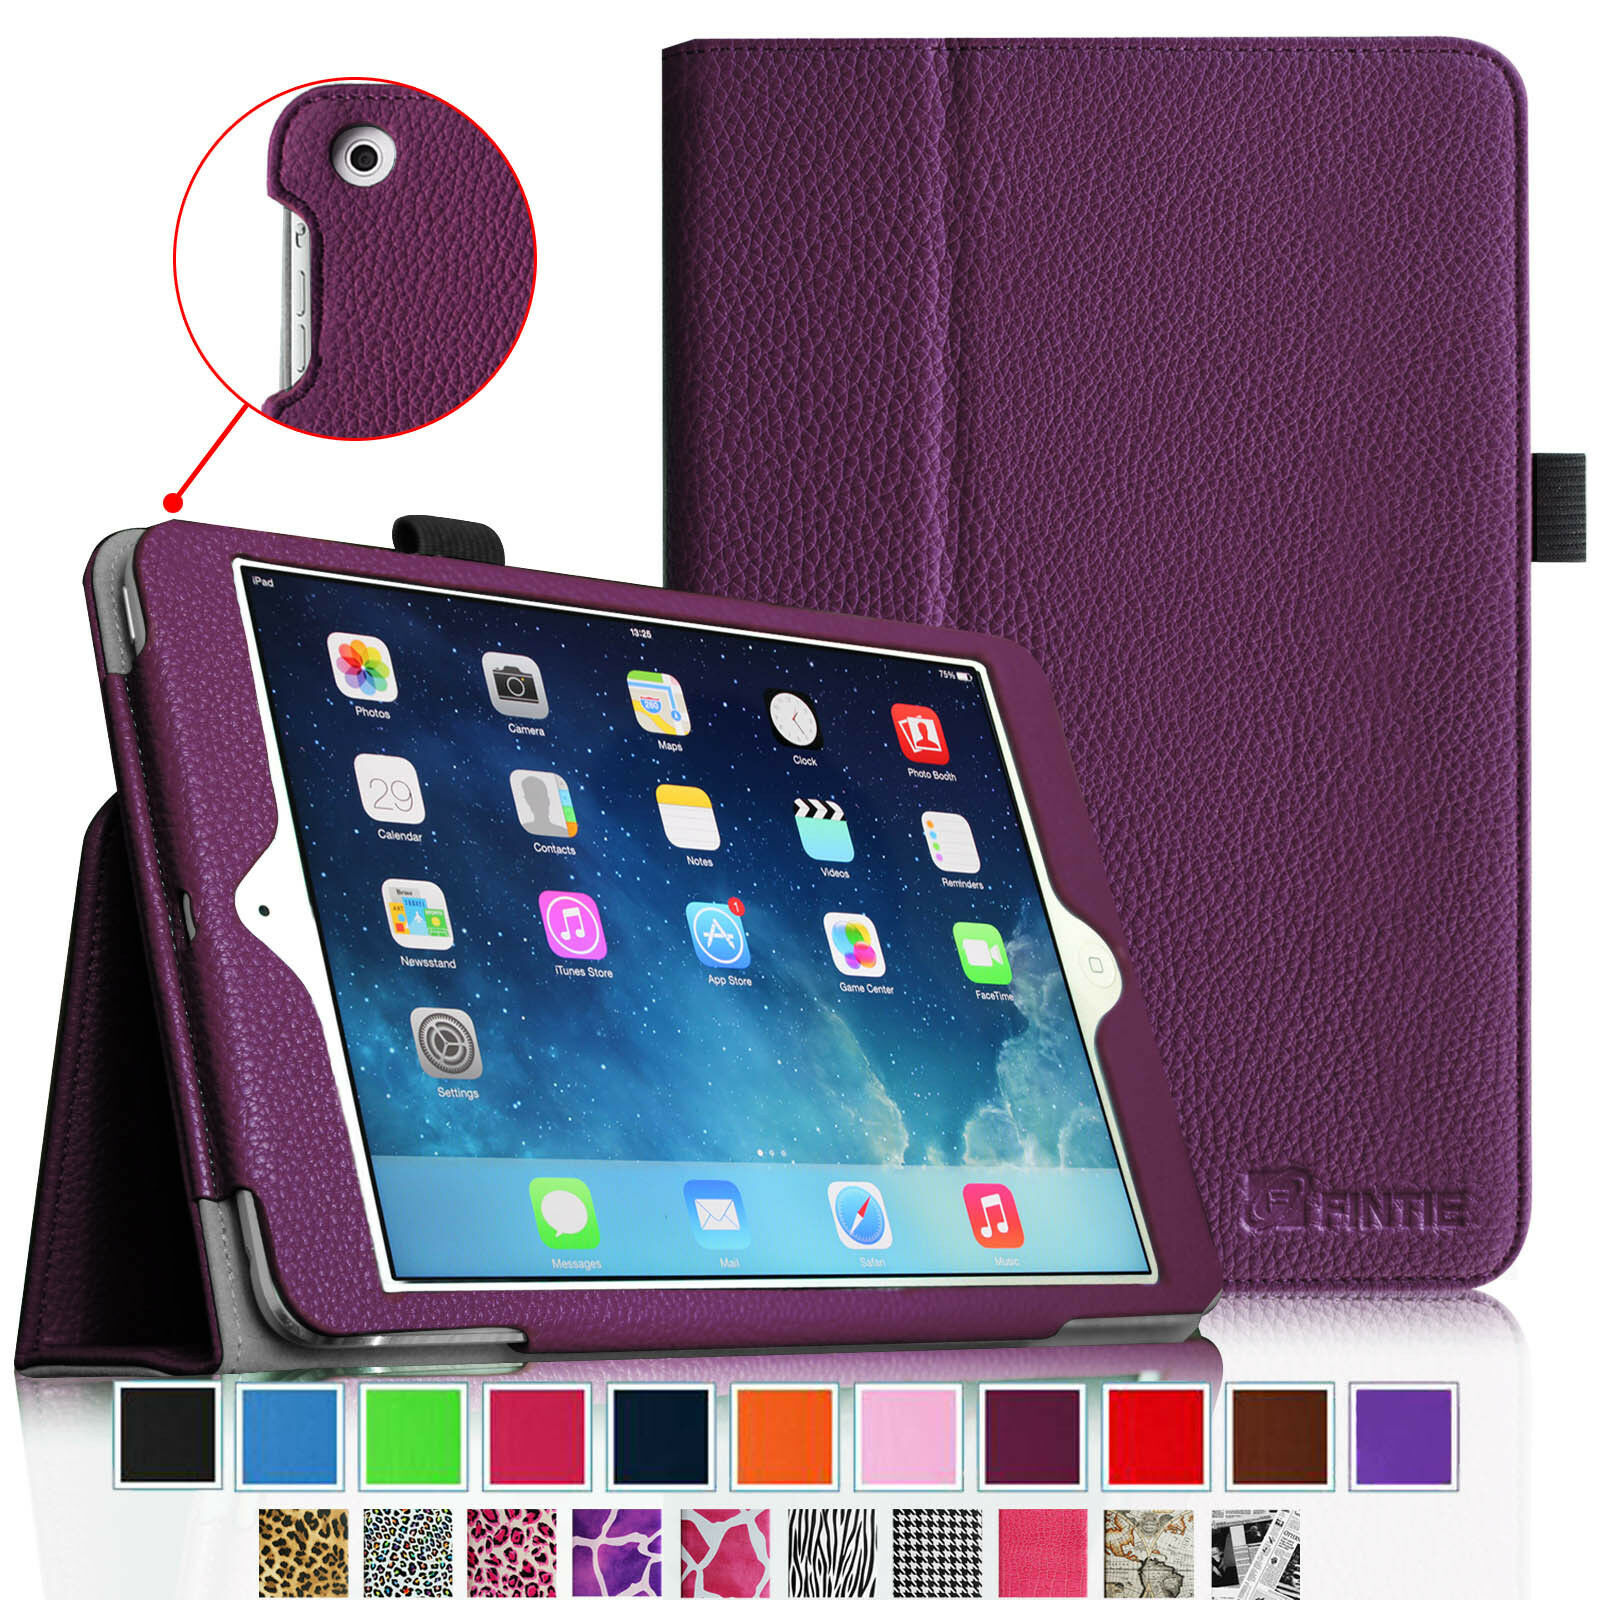 Ipad Mini Case - for iPad mini 3 2 1 4 Slim Fit Folio Leather Case Stand Cover Auto Sleep/Wake